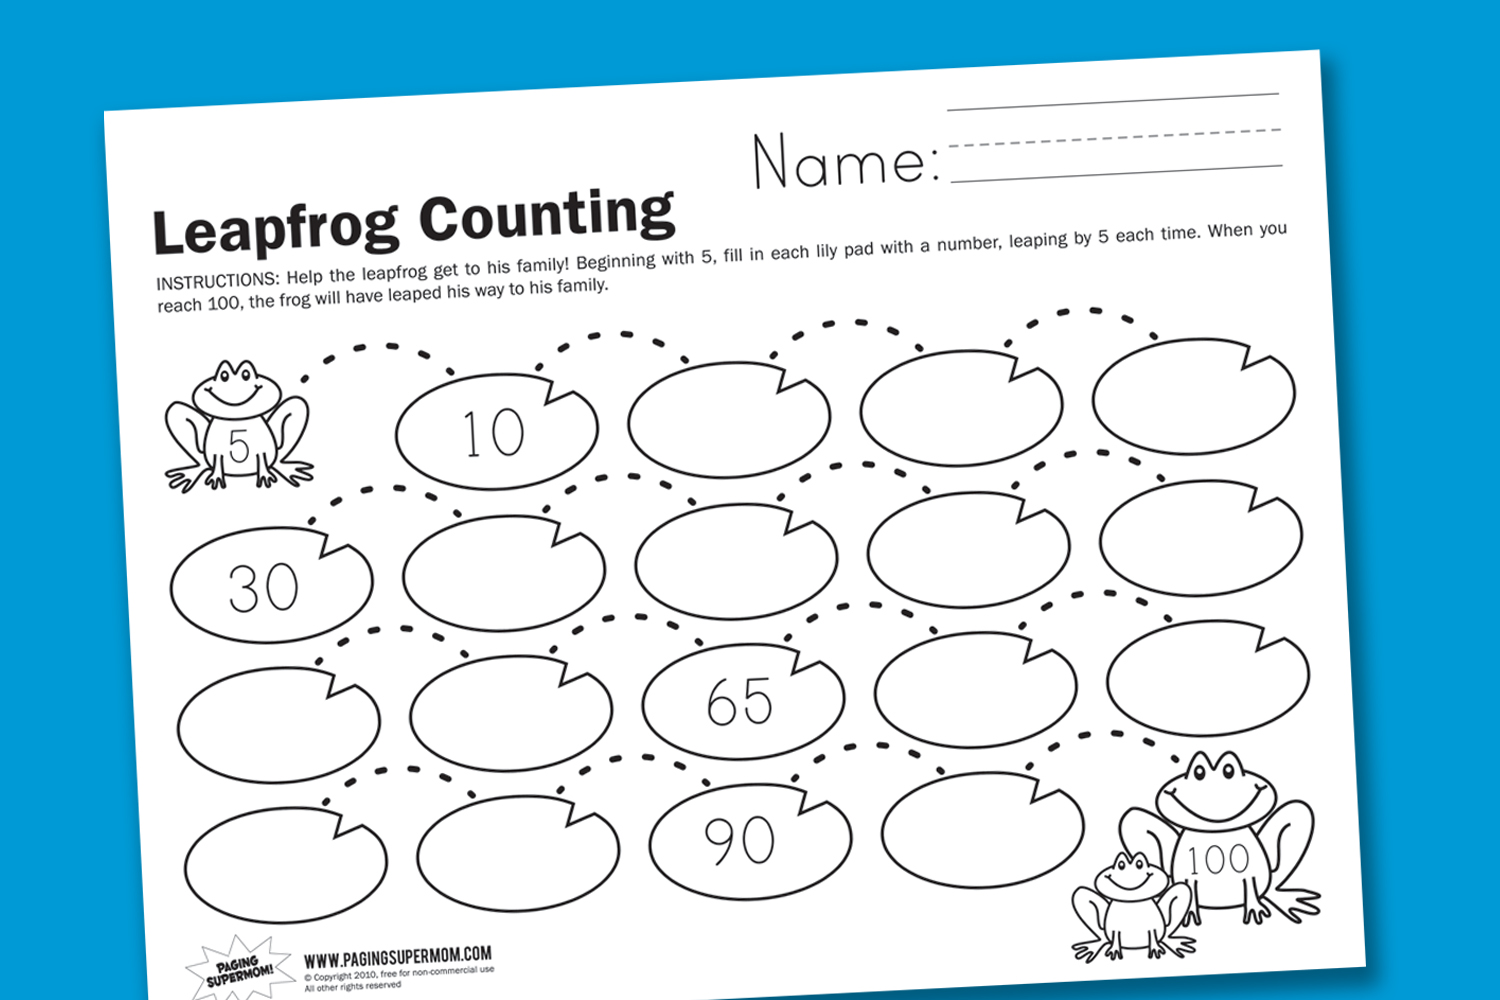 hight resolution of Leapfrog Counting - Paging Supermom